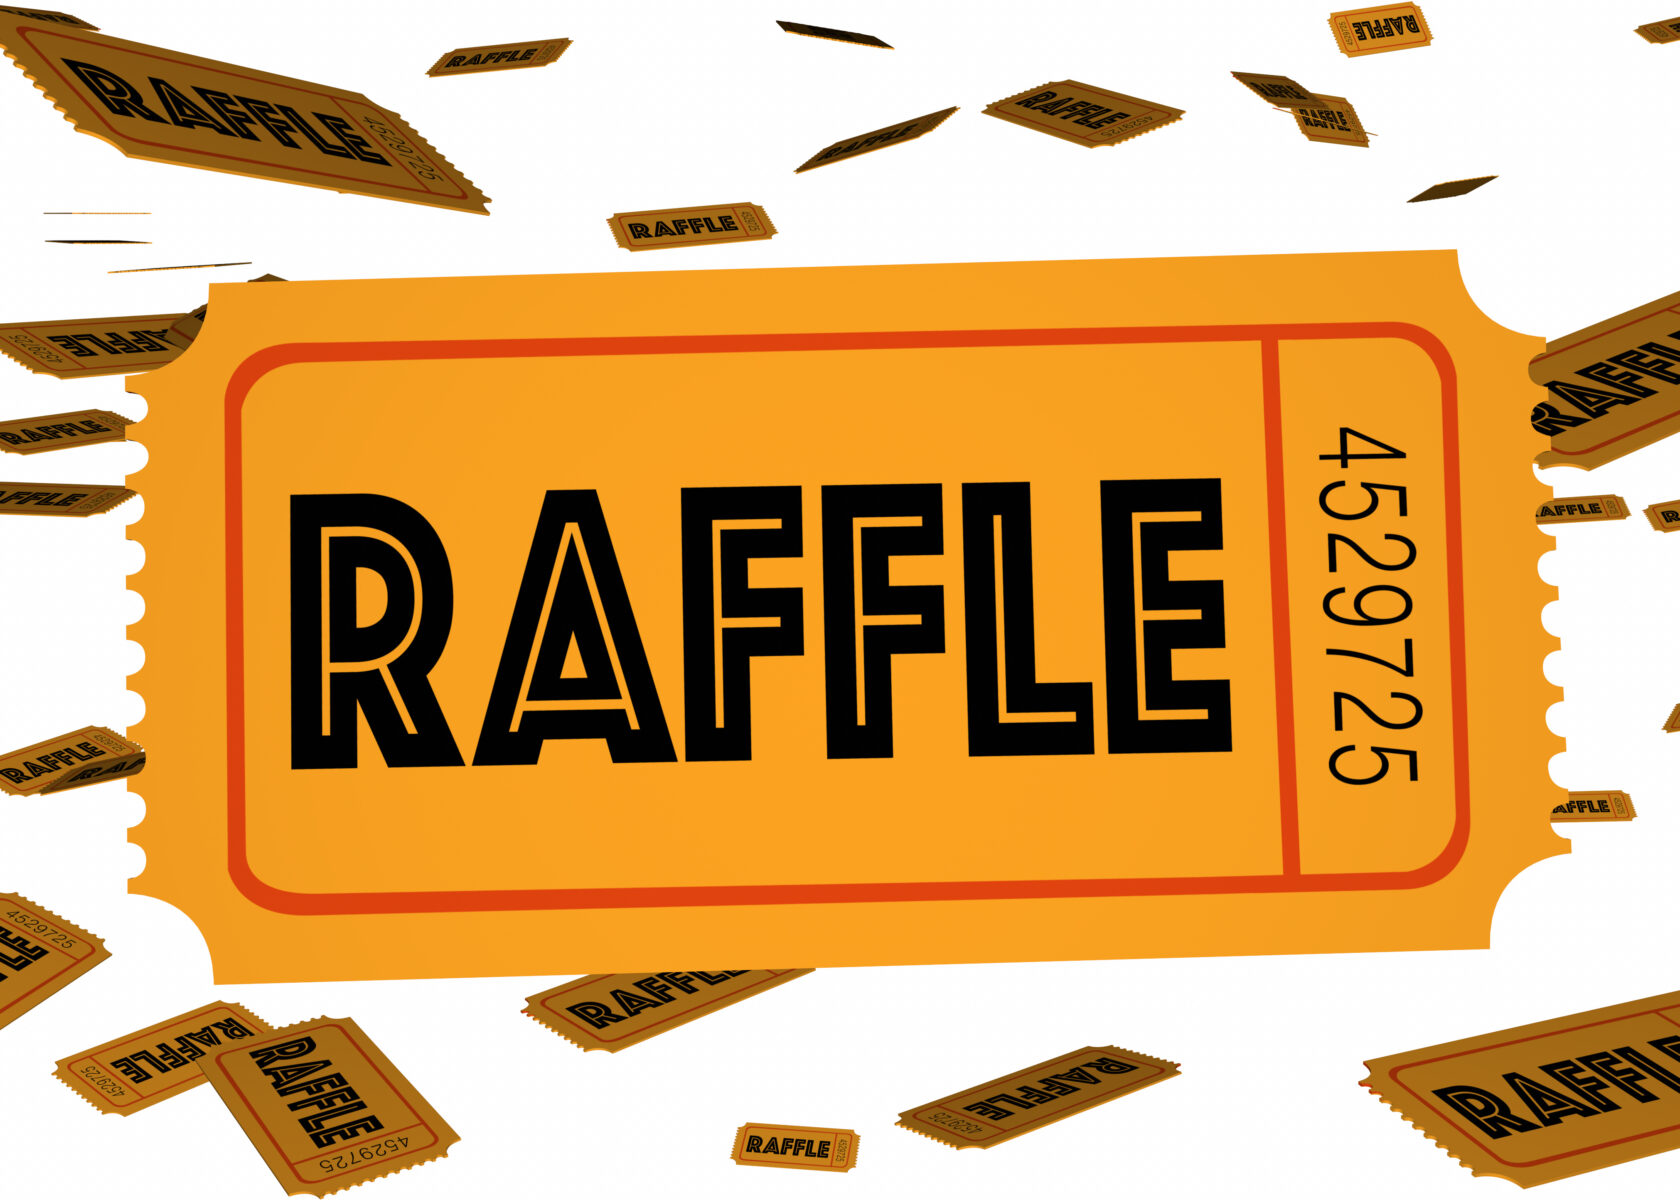 30th Annual Parish Festival Raffle